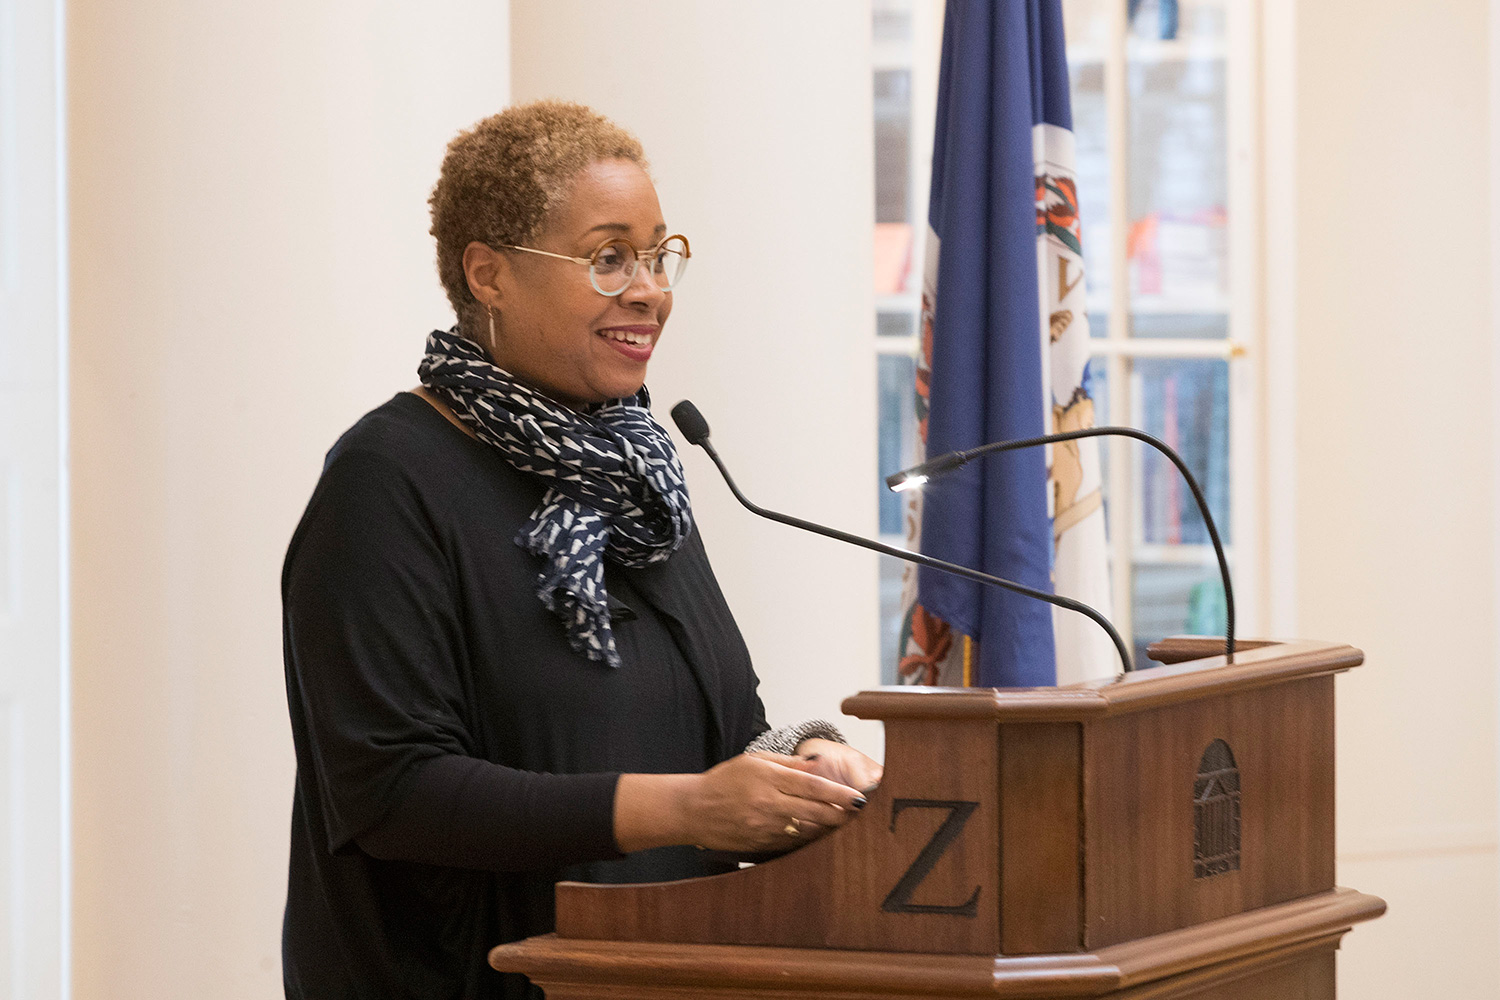 """""""It's been an extraordinary experience to be involved in this project,"""" said UVA alumna Mabel Wilson, a member of the memorial design team and a professor of architecture at Columbia University."""